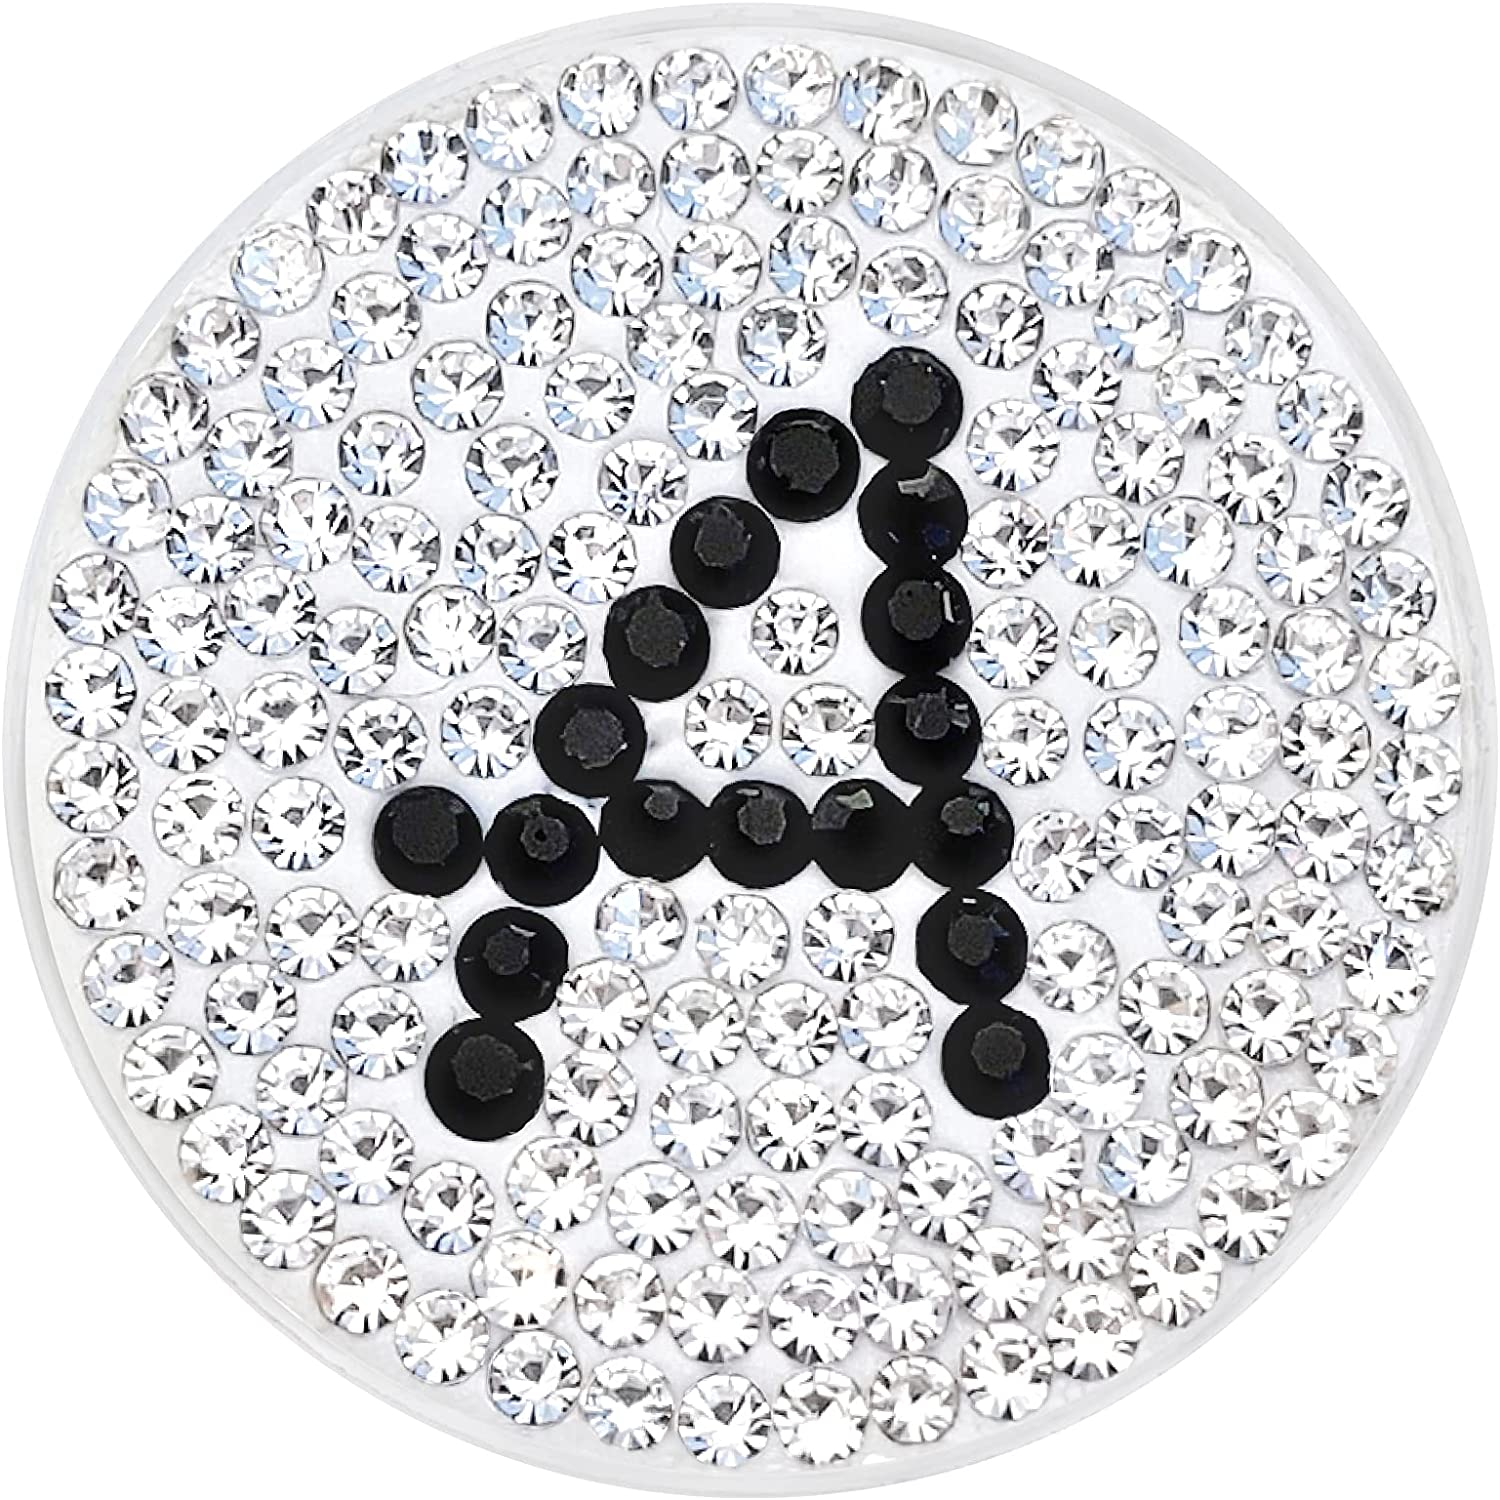 Navika Initial Letter Monogram Micro Golf Crystal 5 ☆ Fixed price for sale very popular Ball Pave Mark